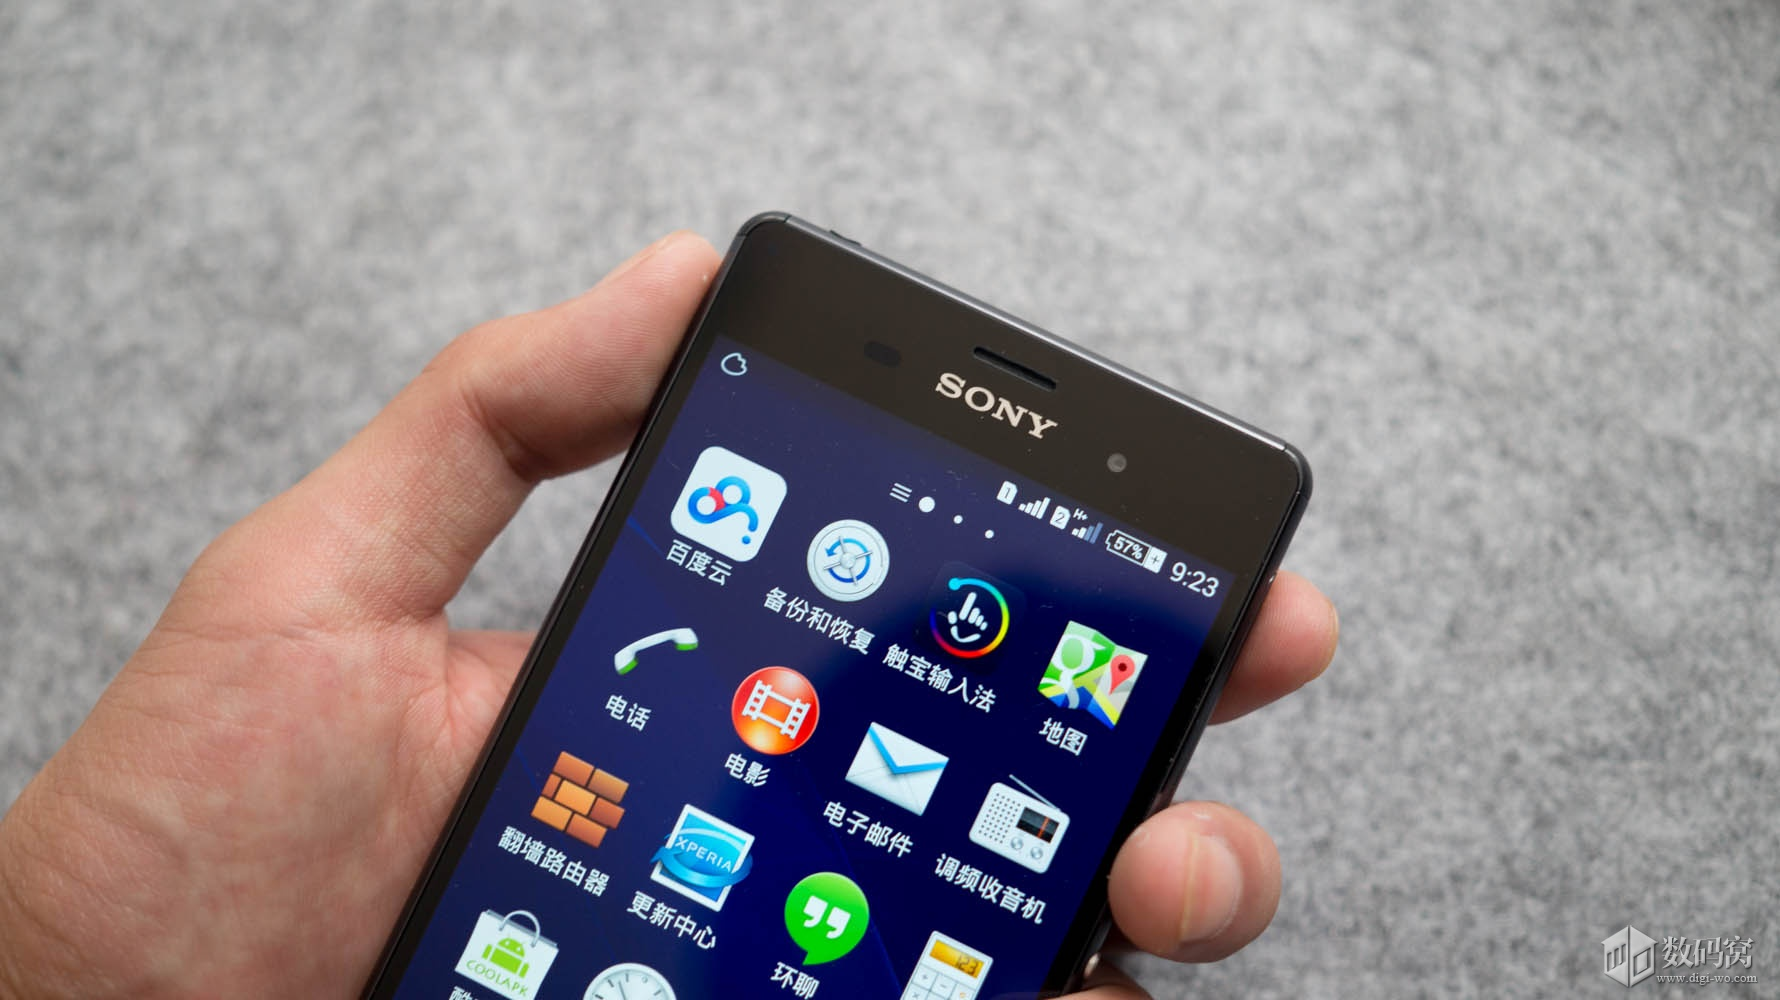 Xperia Z3 Dual D6633 hands on